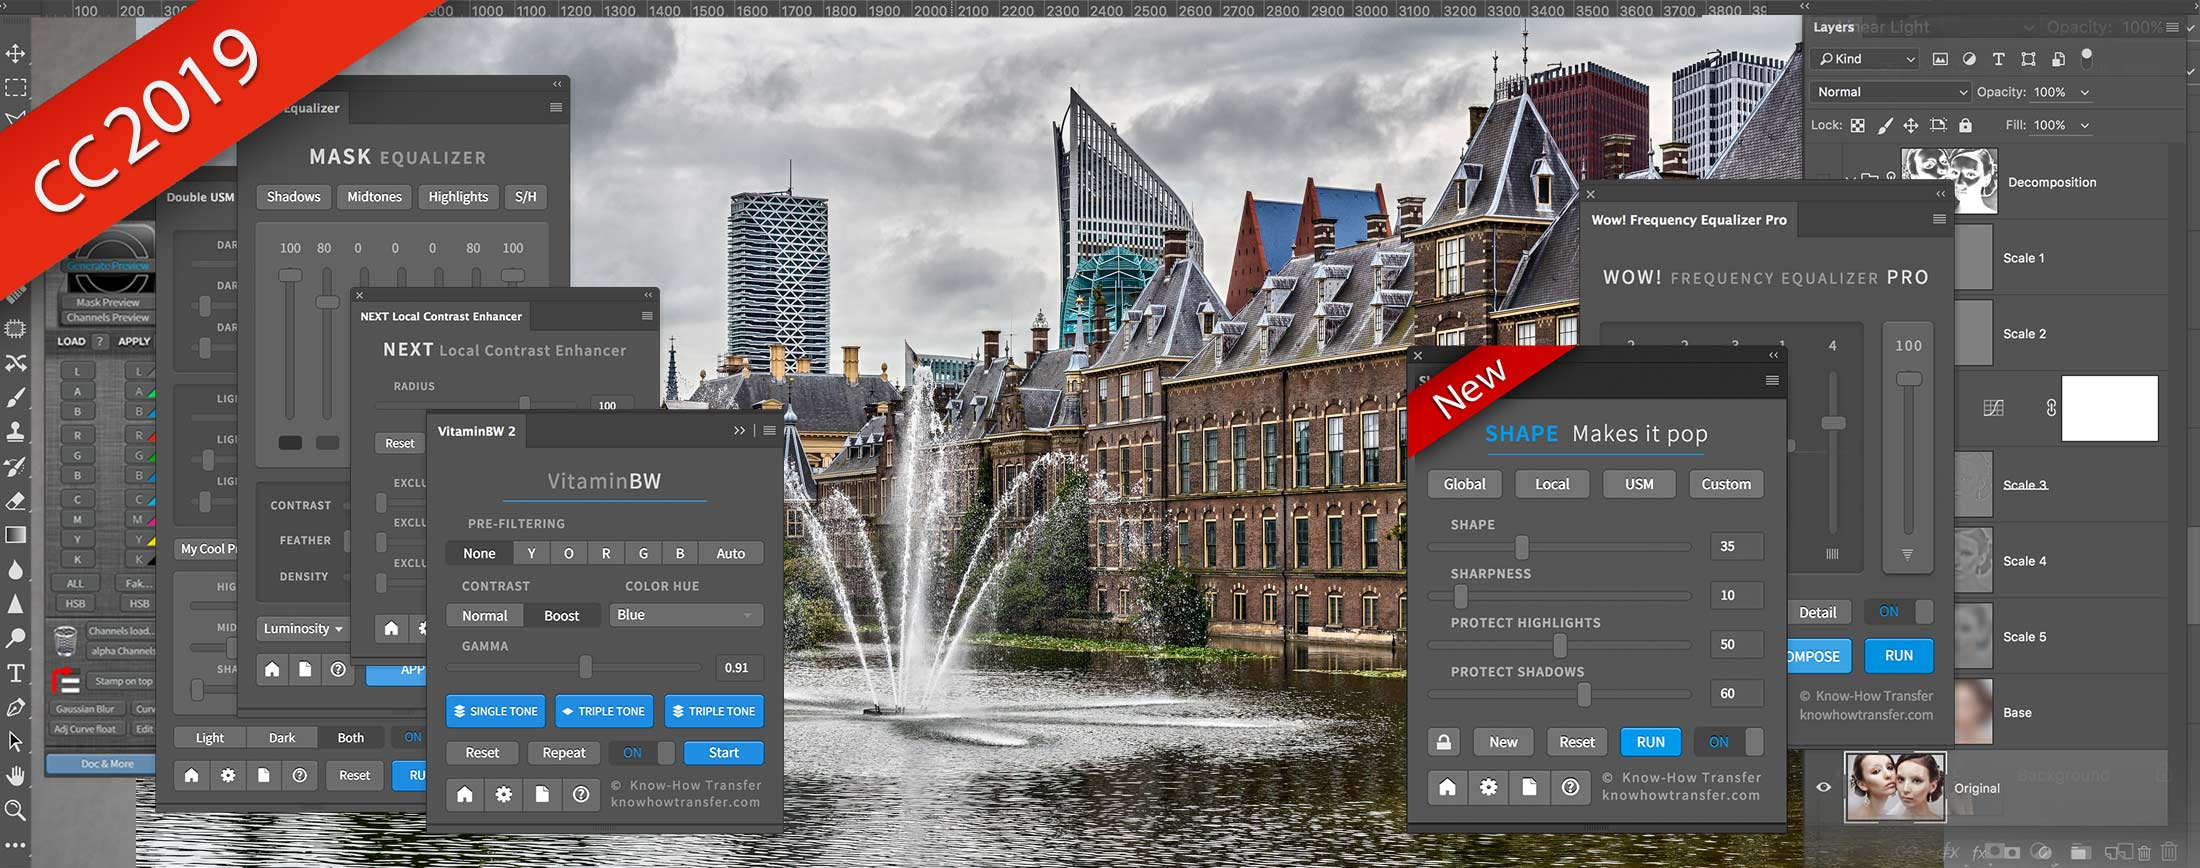 La gamma dei plugin per Photoshop di Know-How Transfer incluso il nuovo Shape